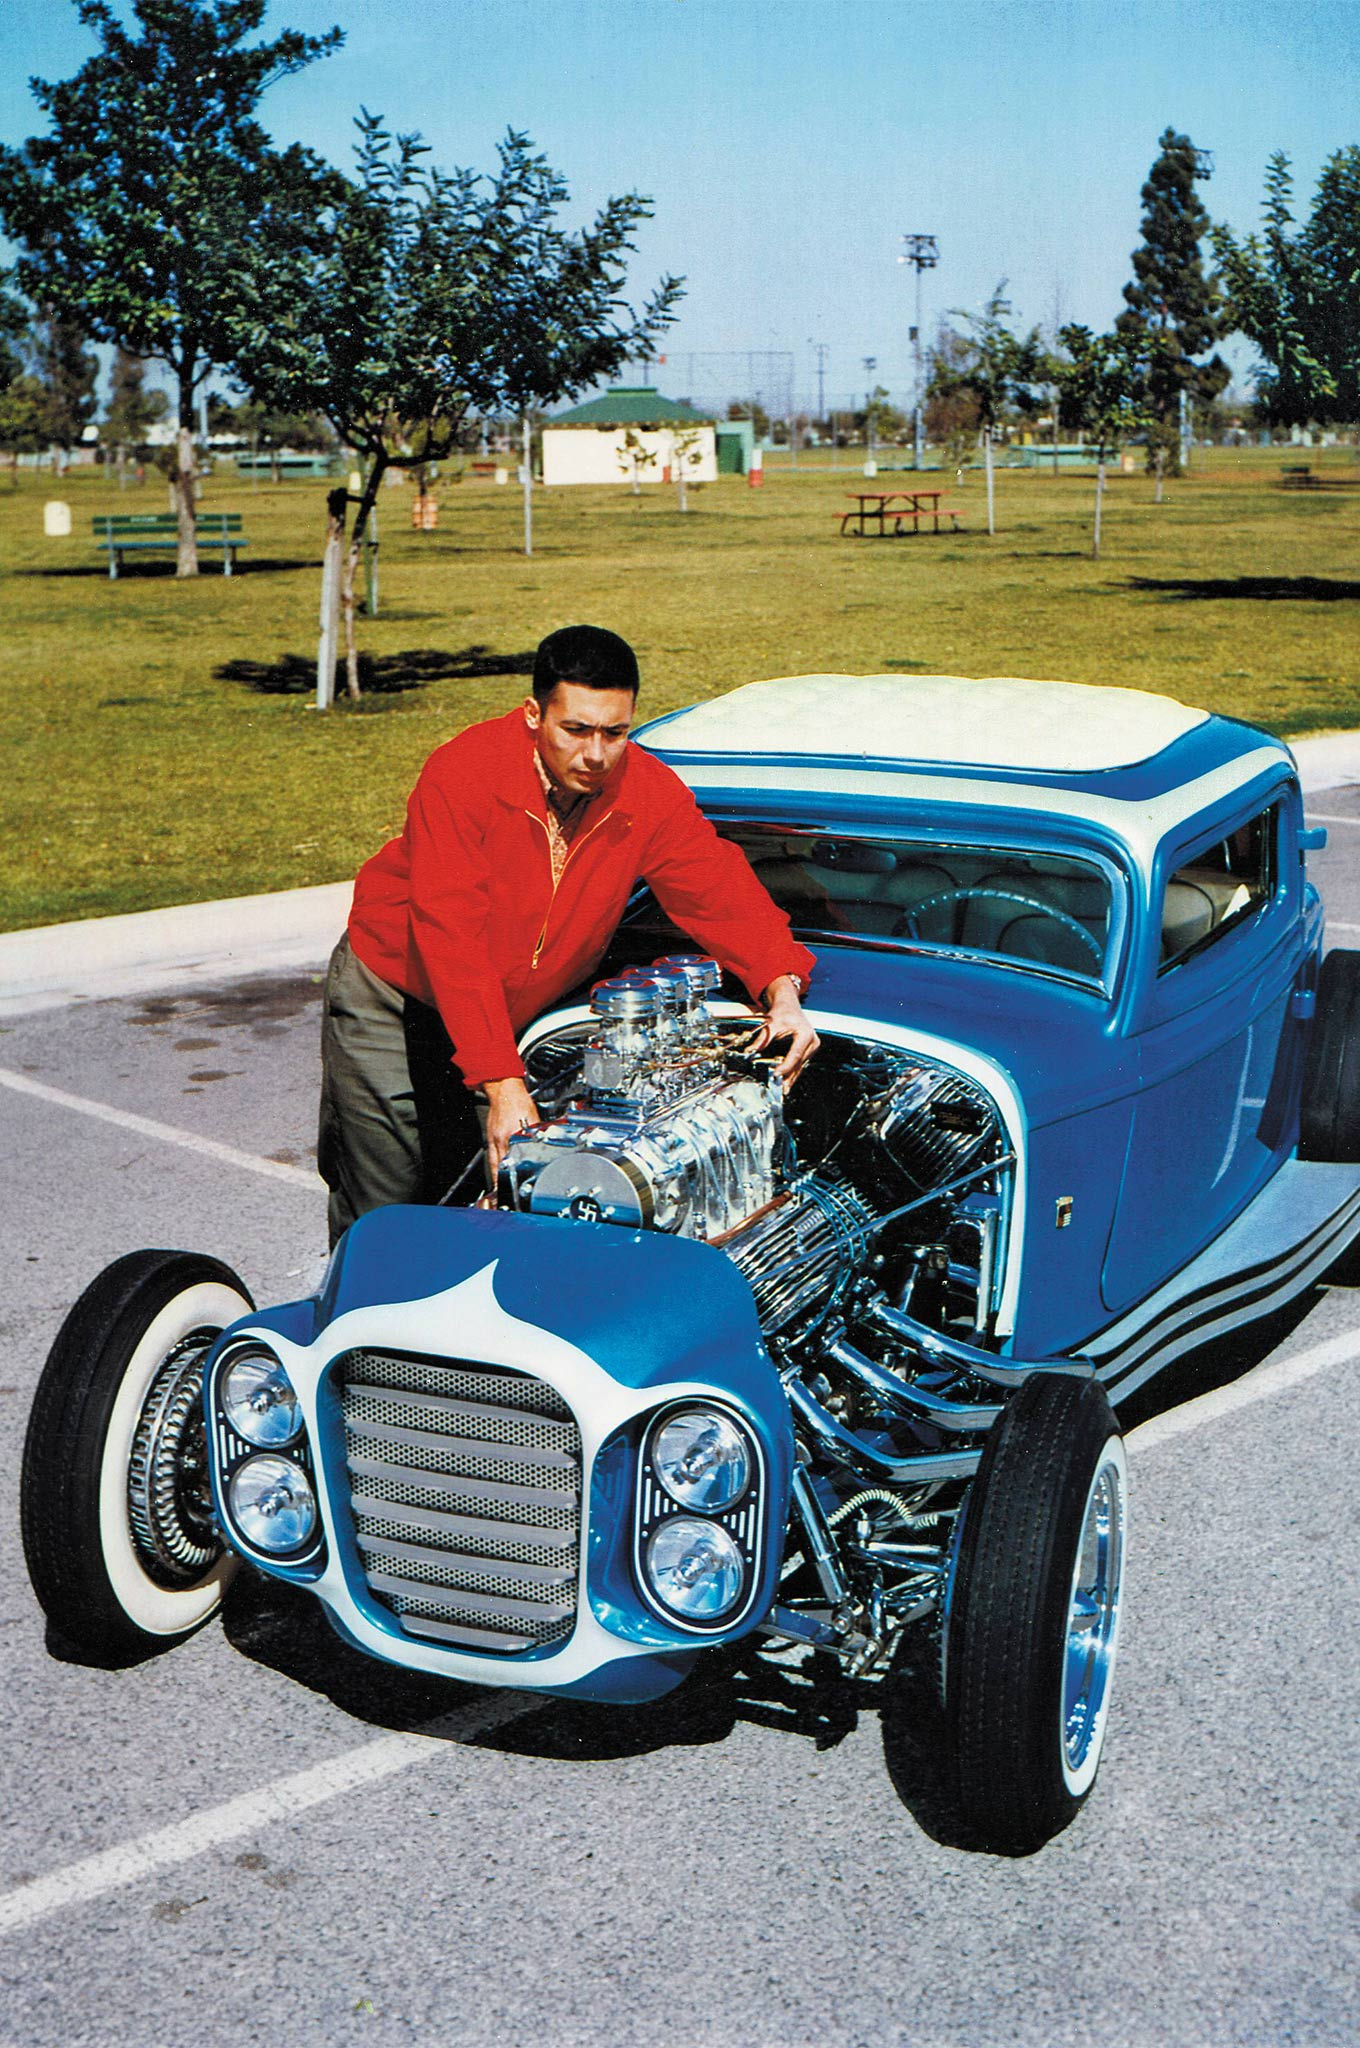 """Here's the most famous car ever to use Kinmont disc brakes. It's Clarence """"Chili"""" Catallo's '32 Ford three-window coupe, built by Catallo, along with Detroit's famous Alexander Brothers and George Barris. By 1961, when this cover appeared, Kinmont discs were long out of production. Then and now, they looked really cool. It was the Hot Rod magazine cover car in July 1961."""